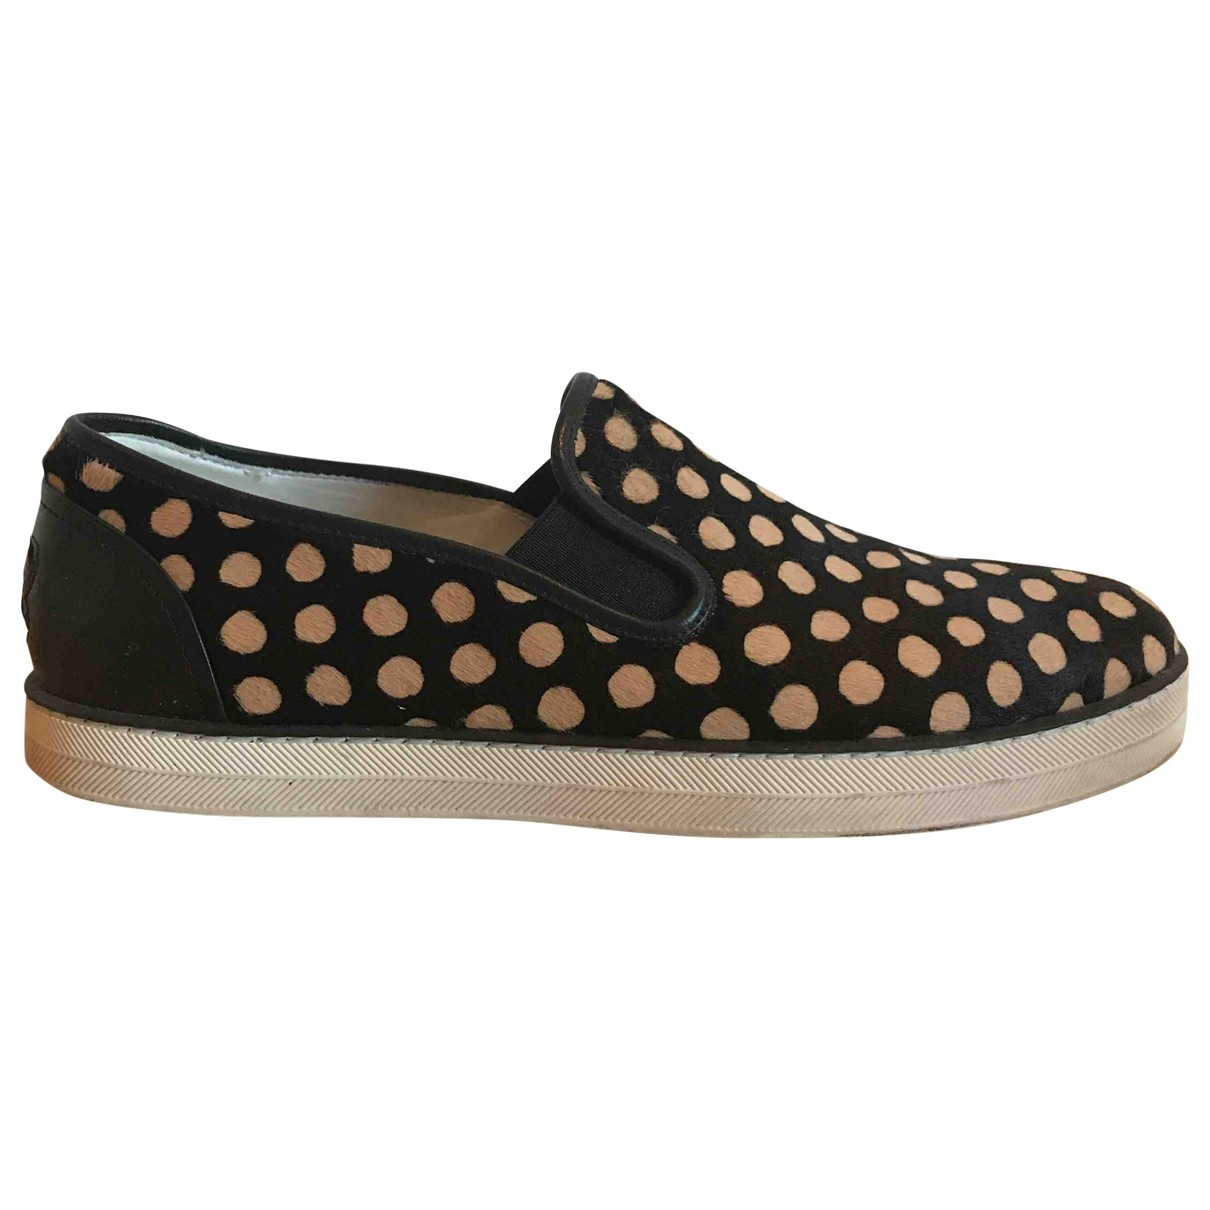 Bottega Veneta \N Black Pony-style calfskin Trainers for Women 39 EU